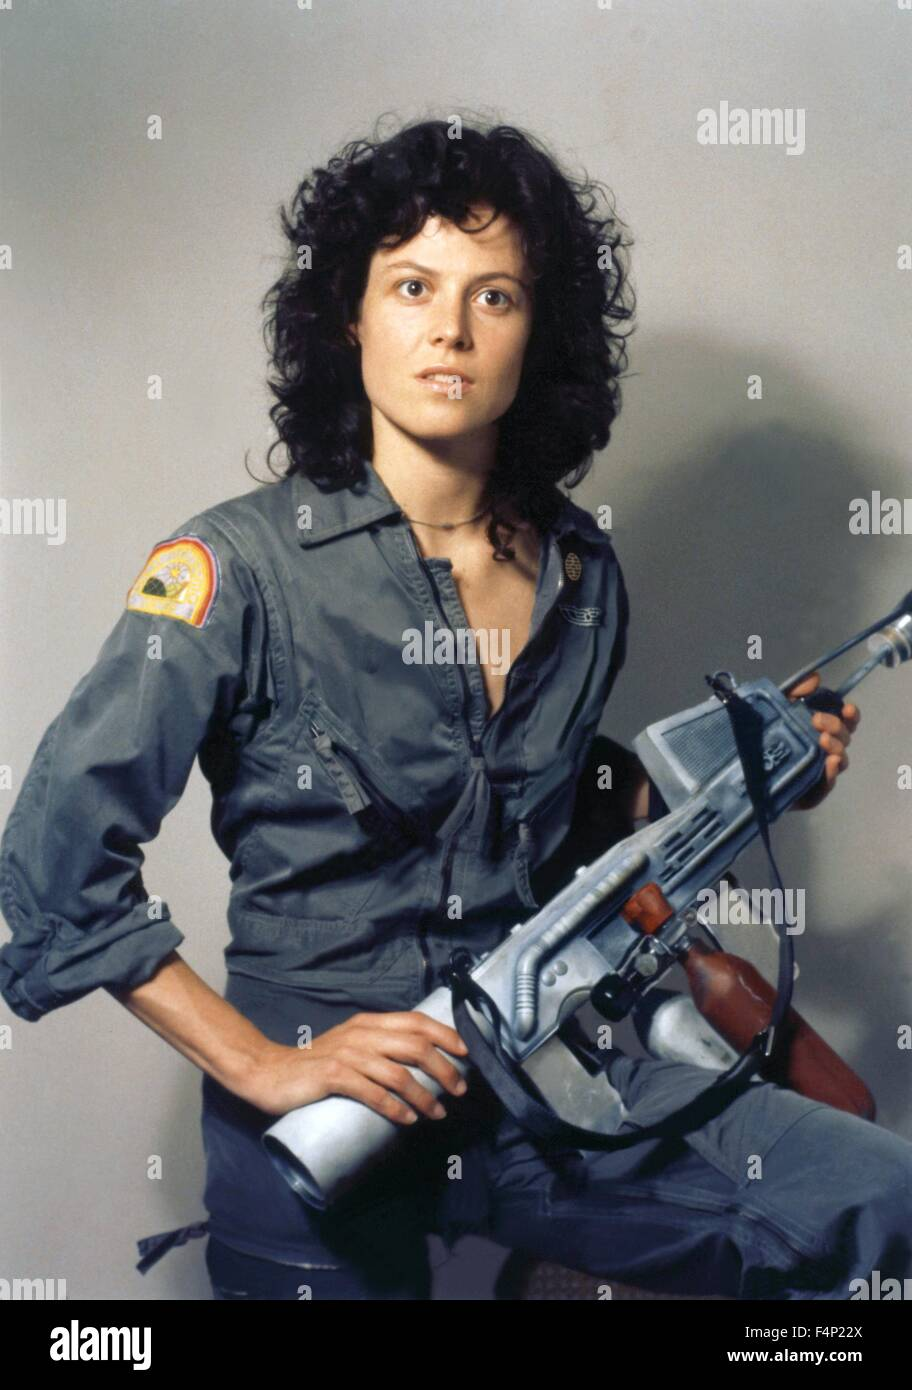 Sigourney Weaver / Alien 1979 directed by Ridley Scott - Stock Image